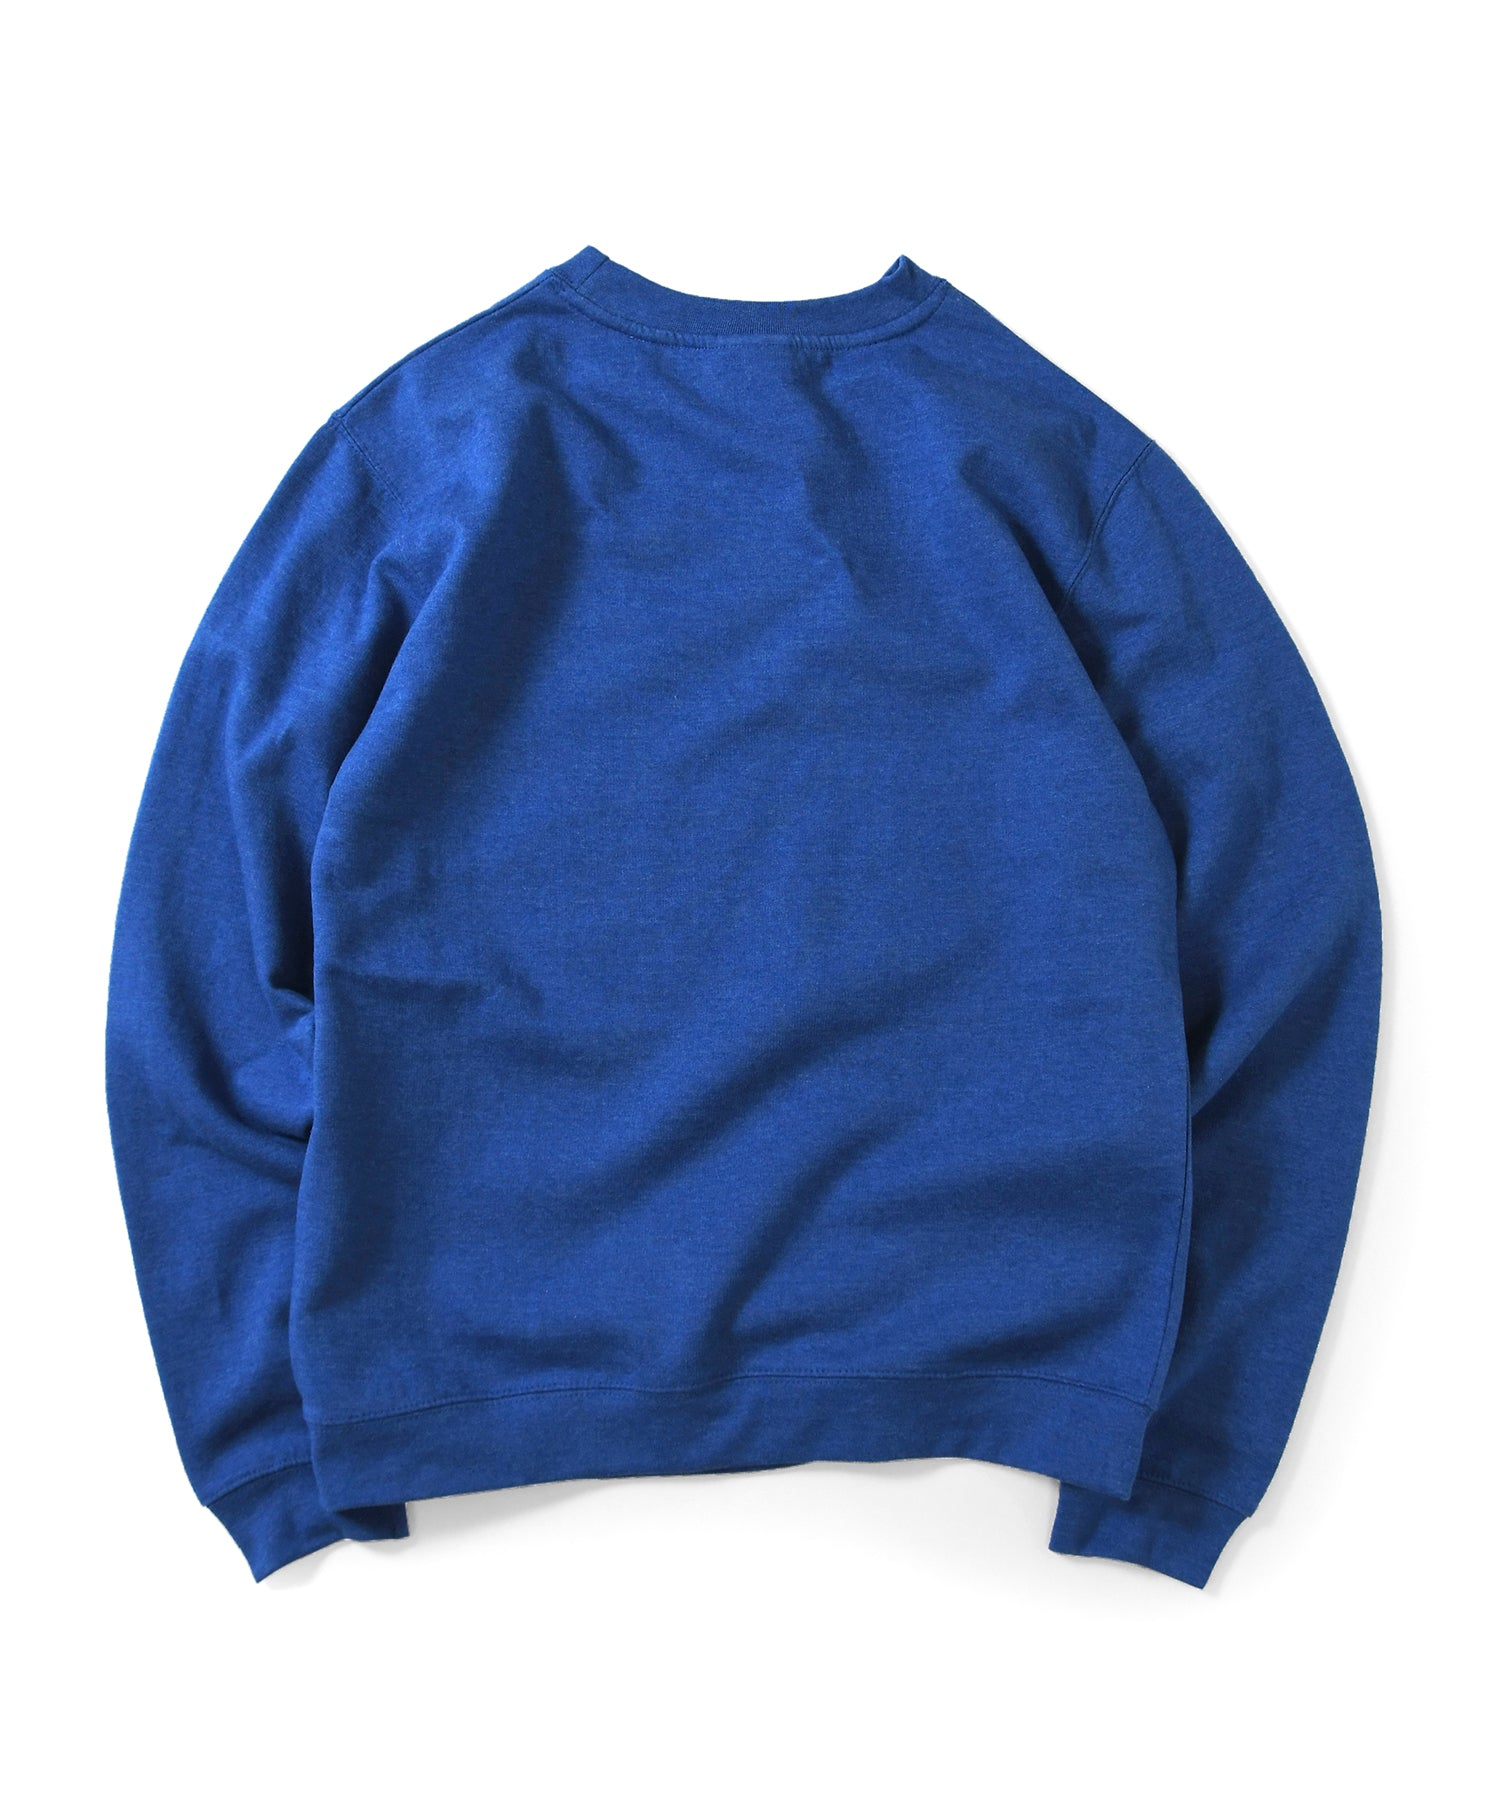 Lafayette KEEP FRESH CREWNECK SWEATSHIRT LS200701 ROYAL